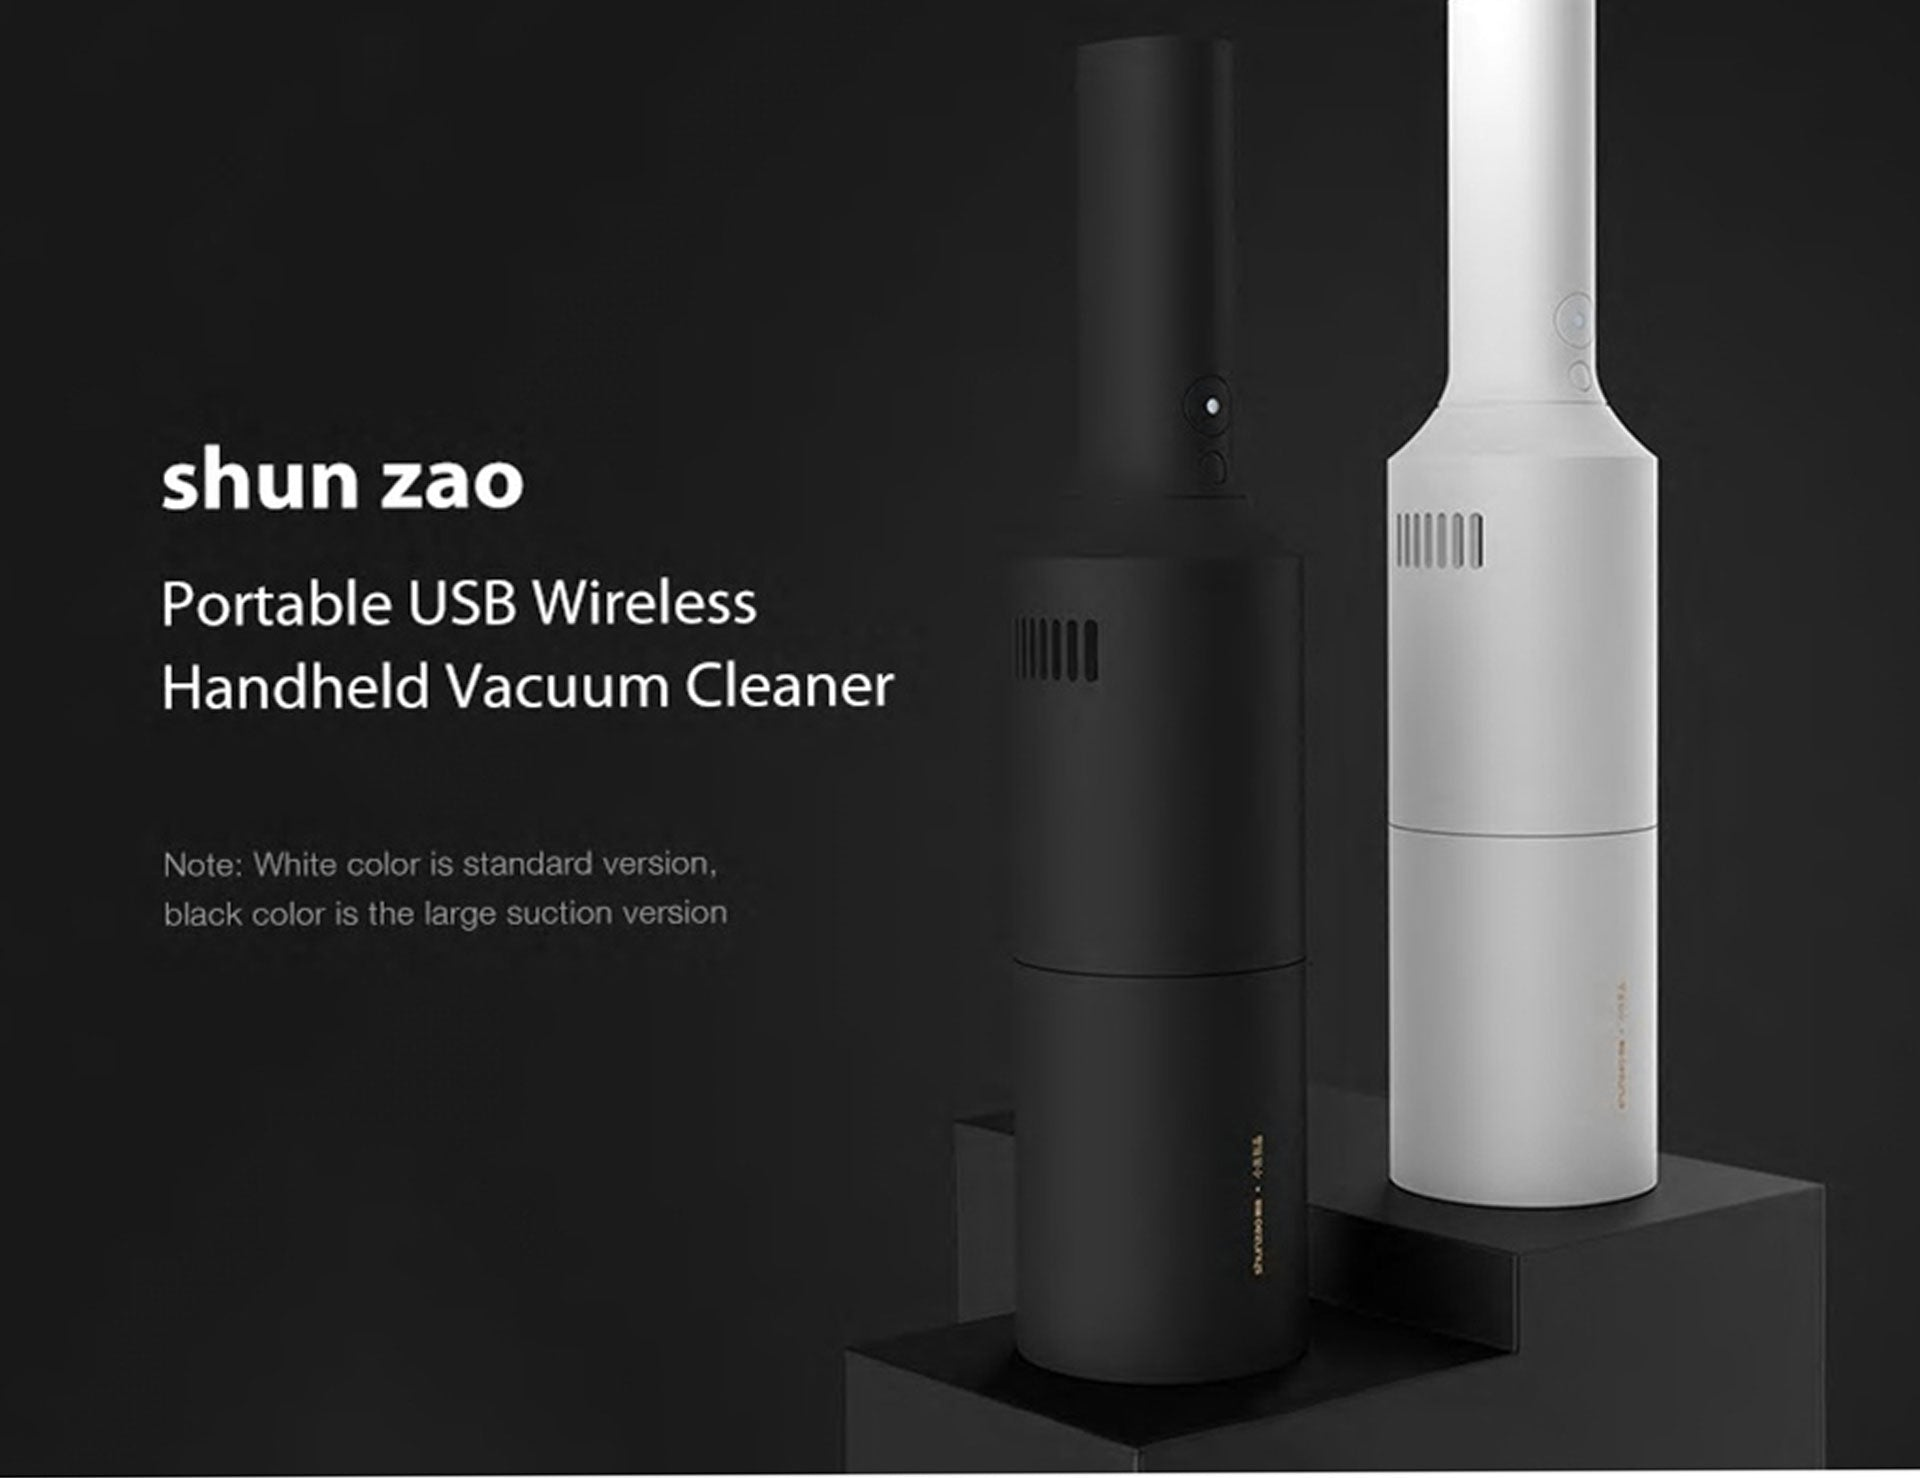 Portable Handheld Vacuum Cleaner USB Wireless Charging Large Suction Version - Black